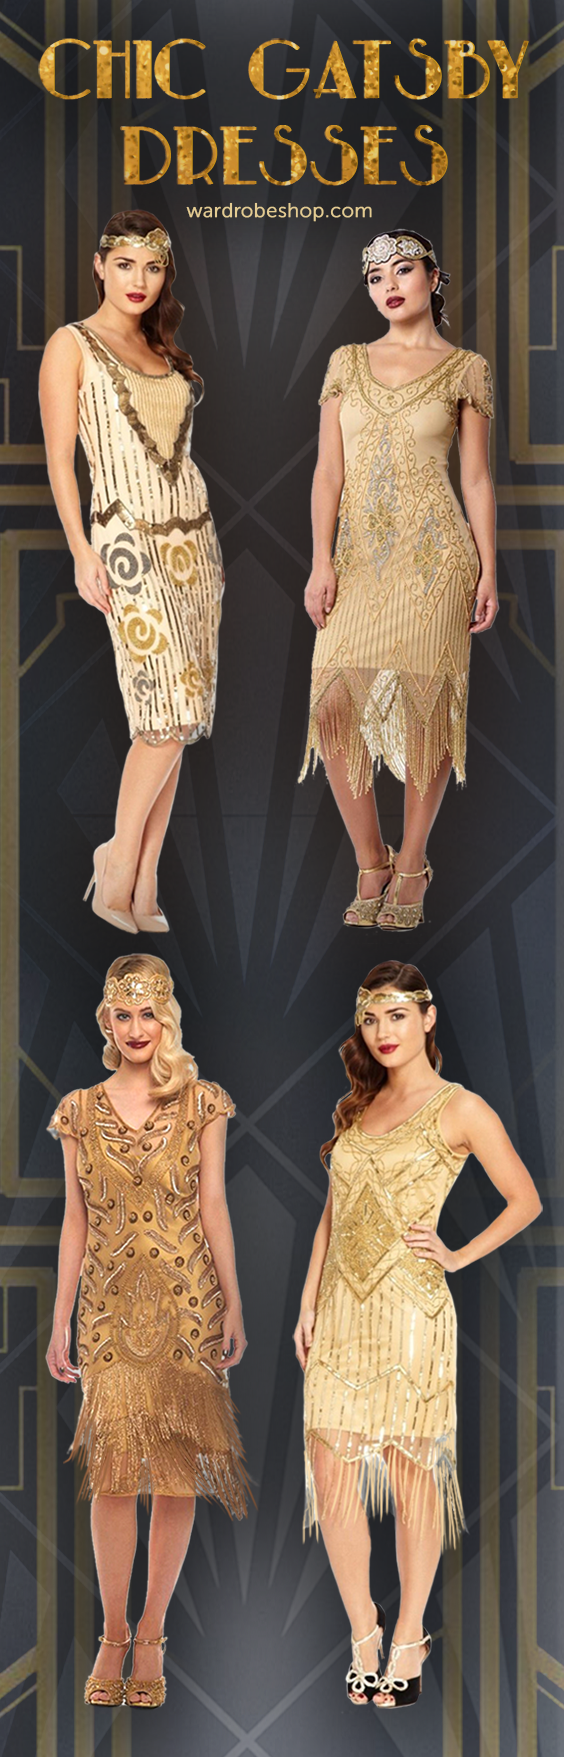 Great Gatsby Inspired Look 1920s Themed Party Vintage Style Outfit Roaring Twenties Retr Great Gatsby Fashion Roaring 20s Fashion Flapper Style Dresses [ 1757 x 564 Pixel ]